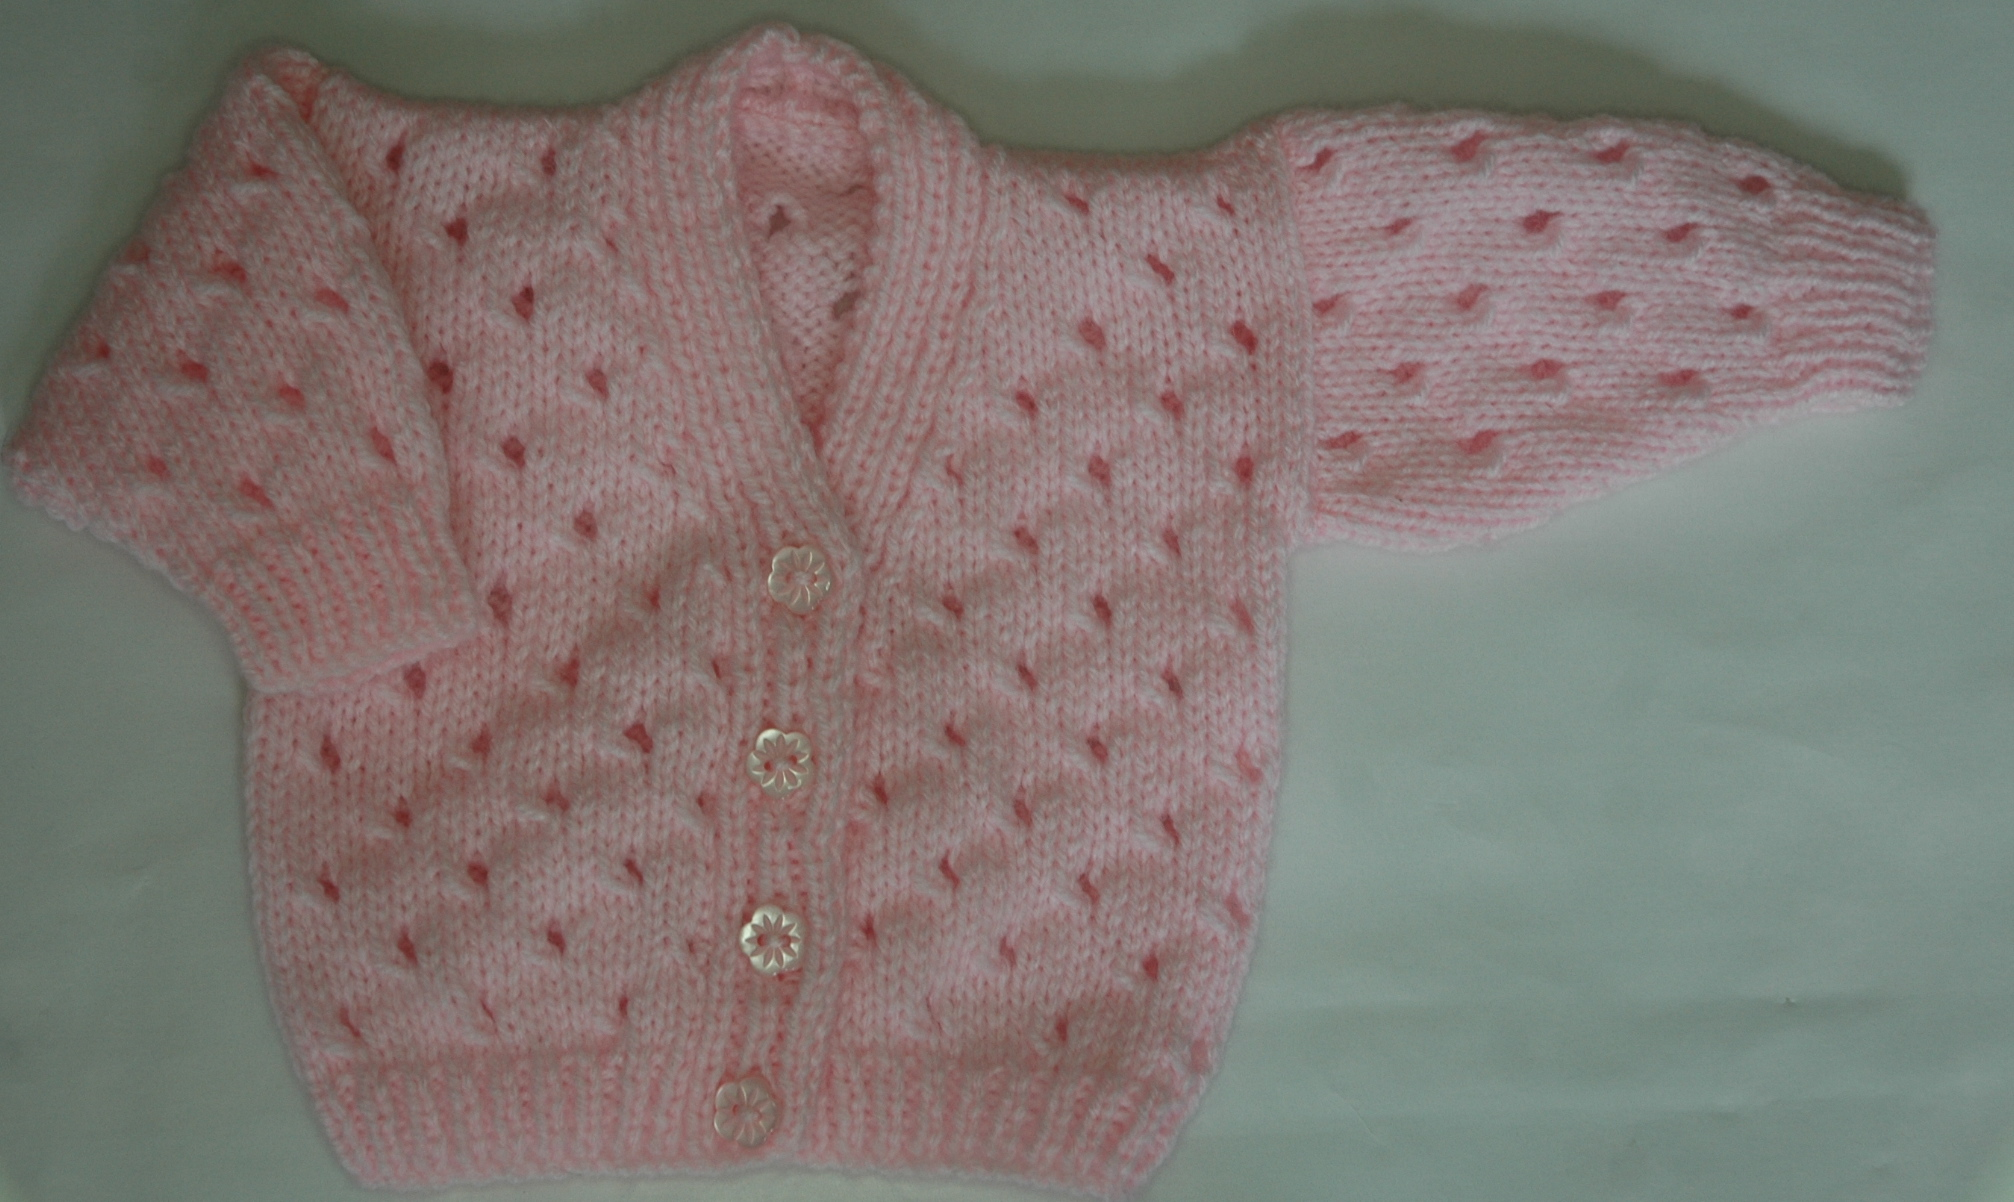 Free Knitting Patterns For Newborn Babies Cardigans : Knitting Pattern For Baby Cardigan Uk - Cardigan With Buttons